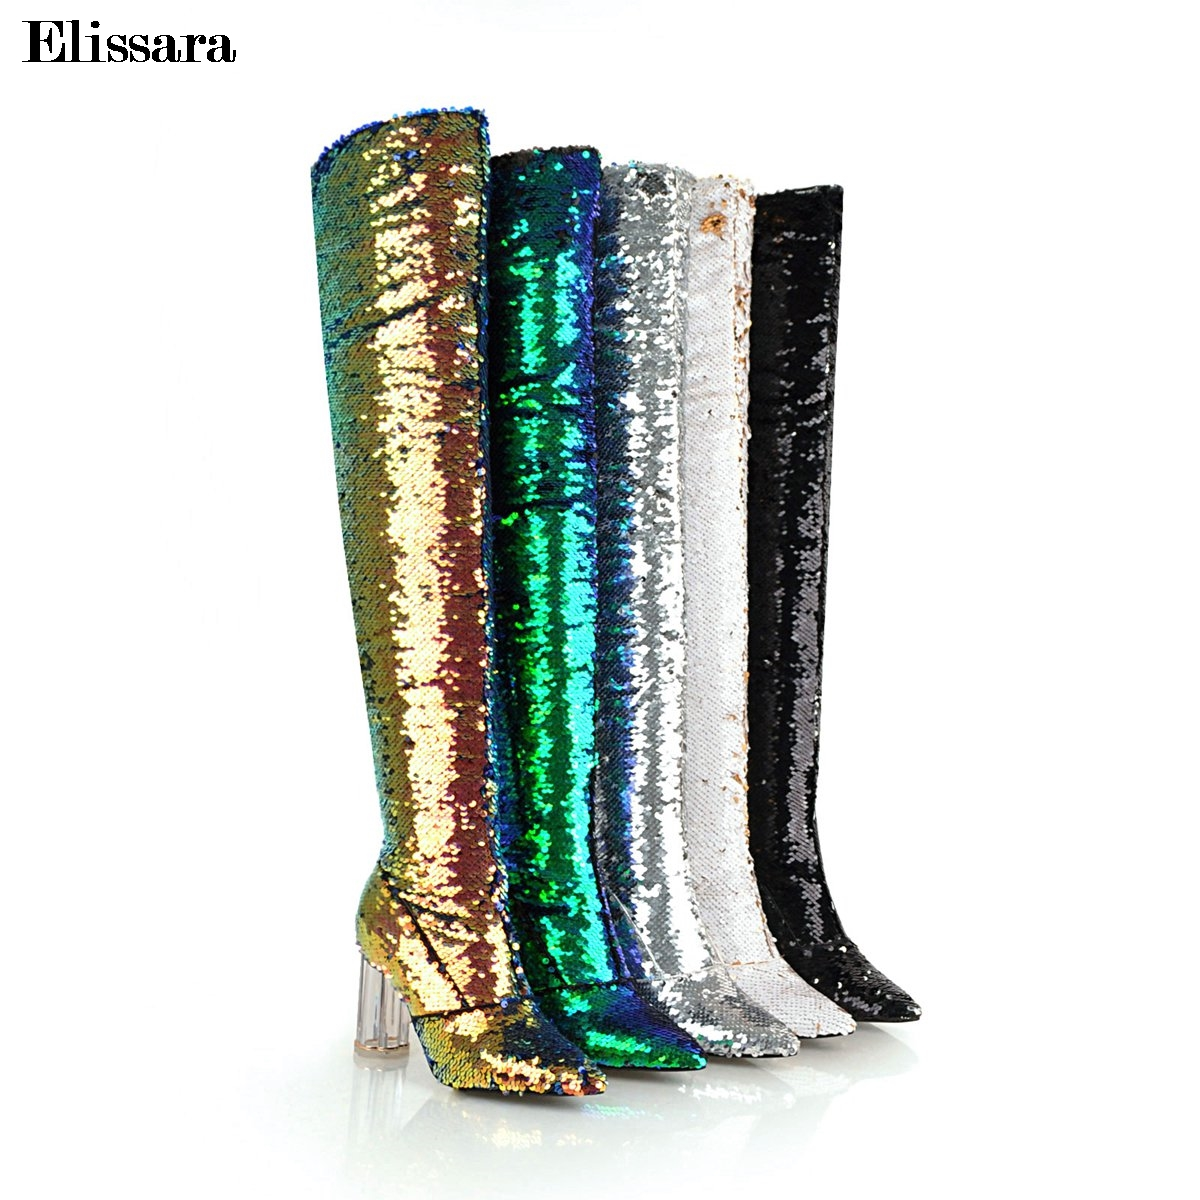 Women Zip High Heels Thigh High Boots Shoes Woman Glitter Bling Gradual Change Color Pointed Toe Boots Shoes Size 33-43 Elissara elissara women ankle boots women high heels boots ladies zip high quality denim pointed toe shoes plus size 33 43